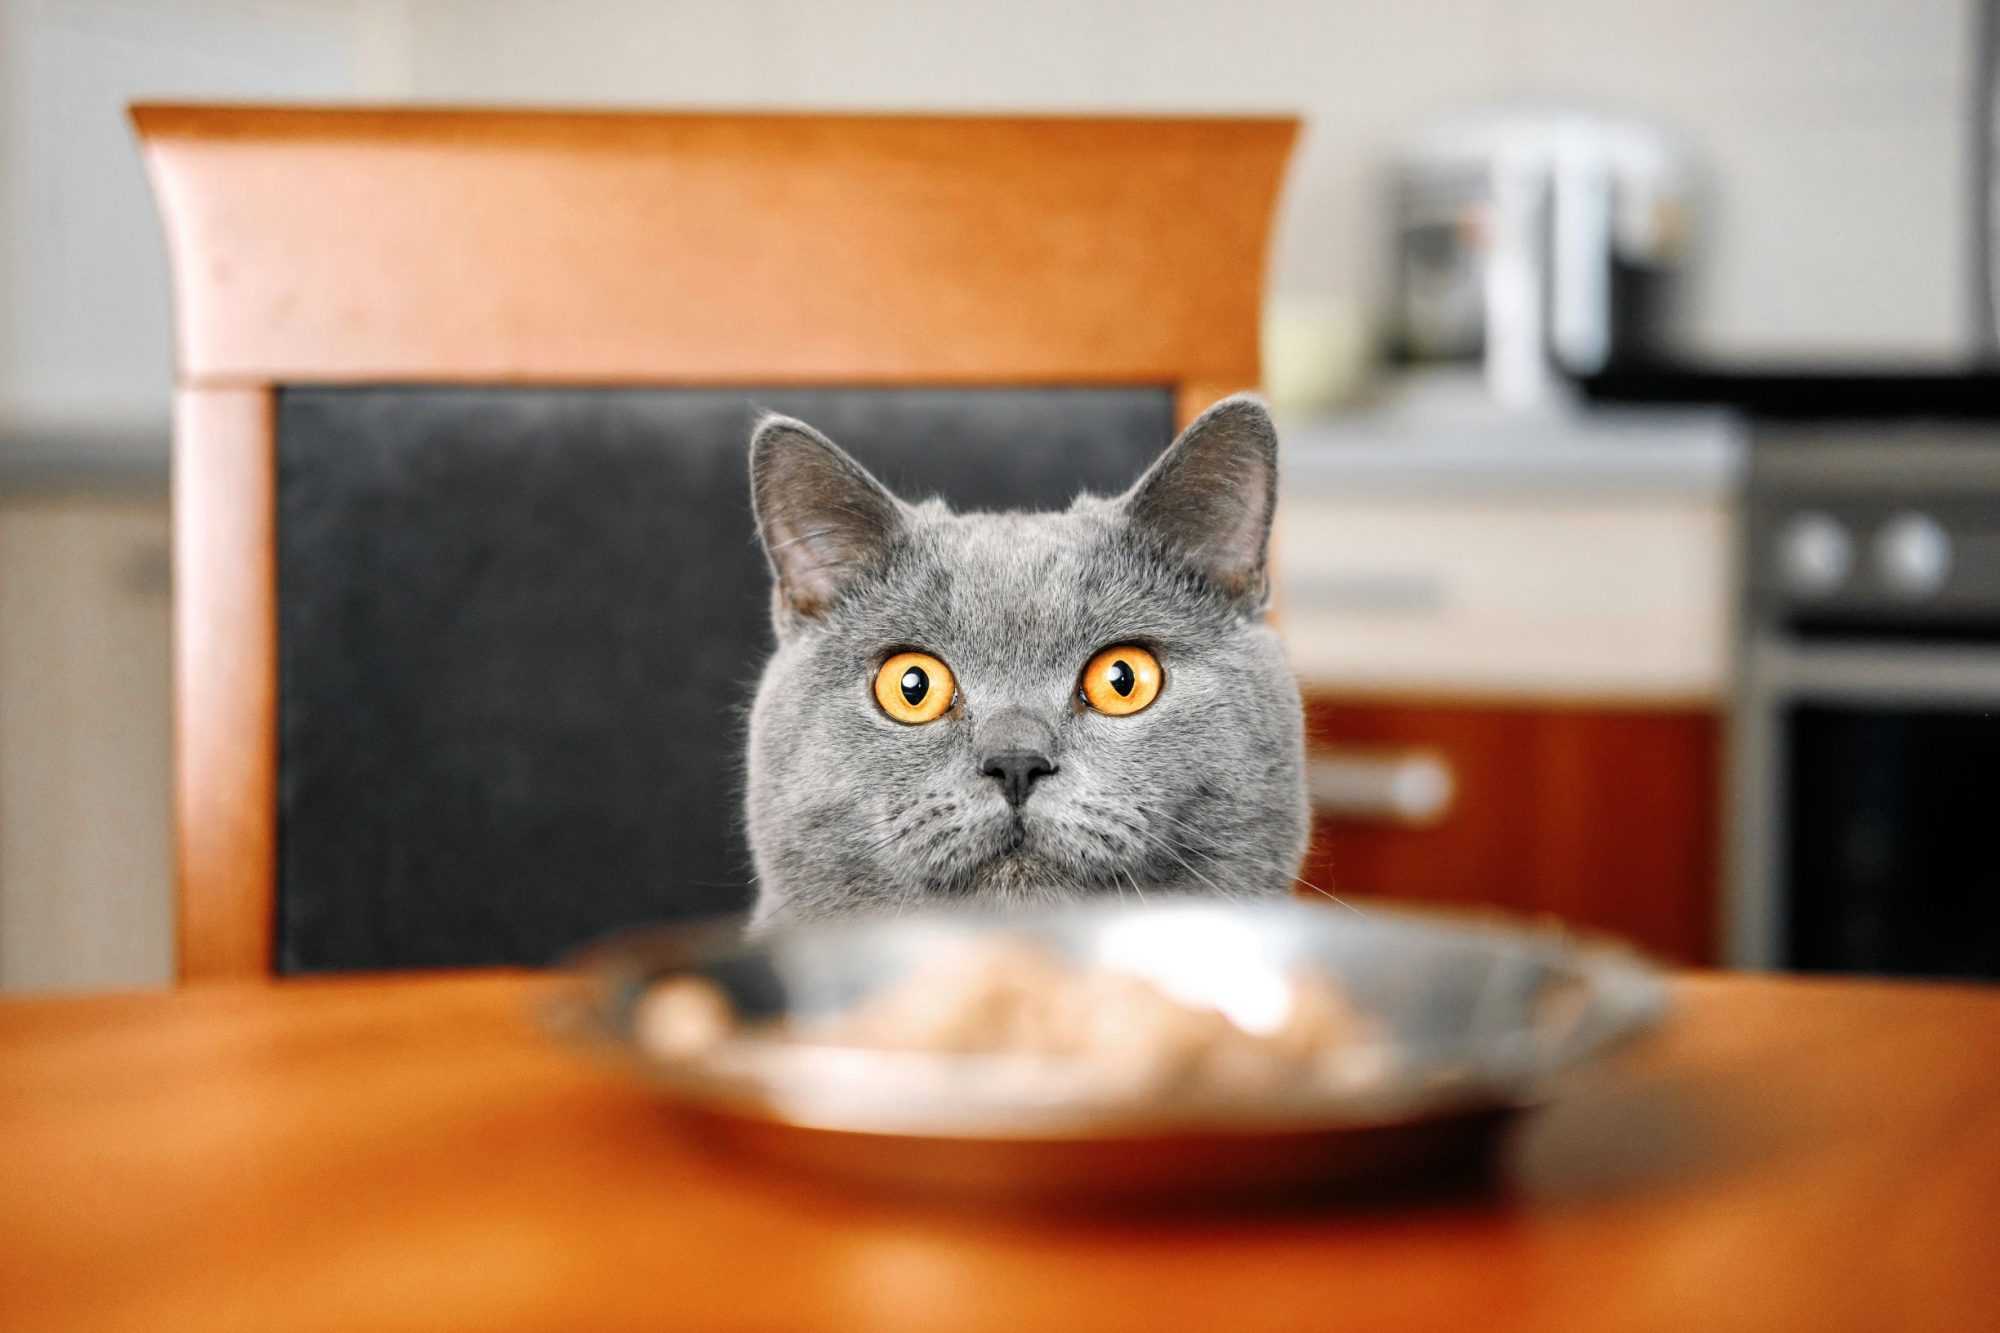 Cat looking at plate of foot on table.